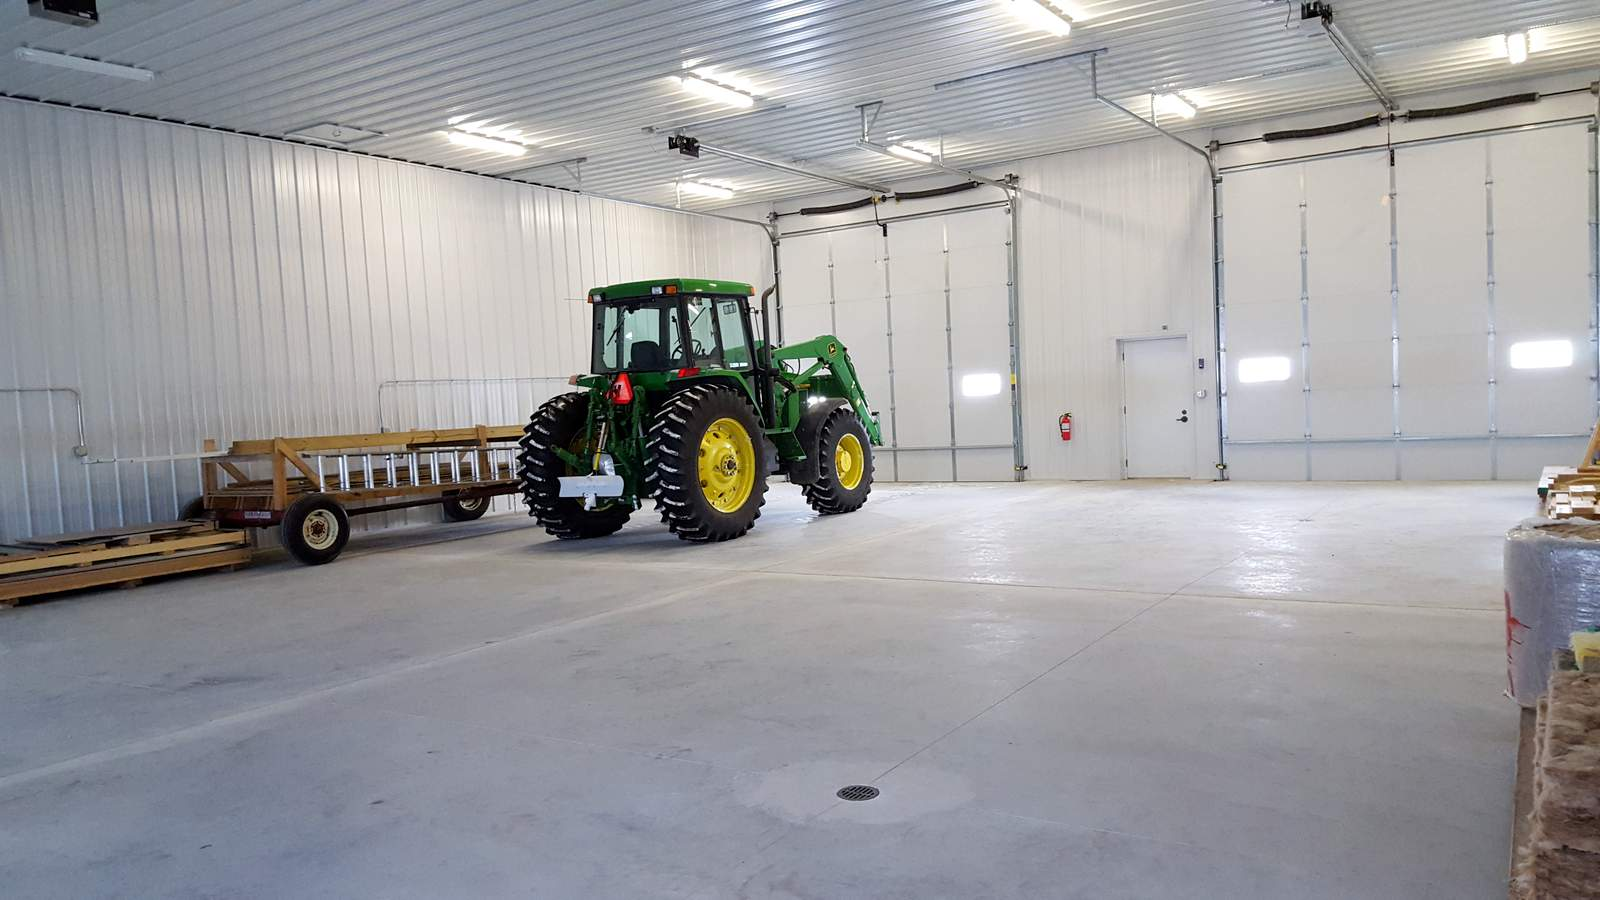 Tractor in Heated Warehouse Space